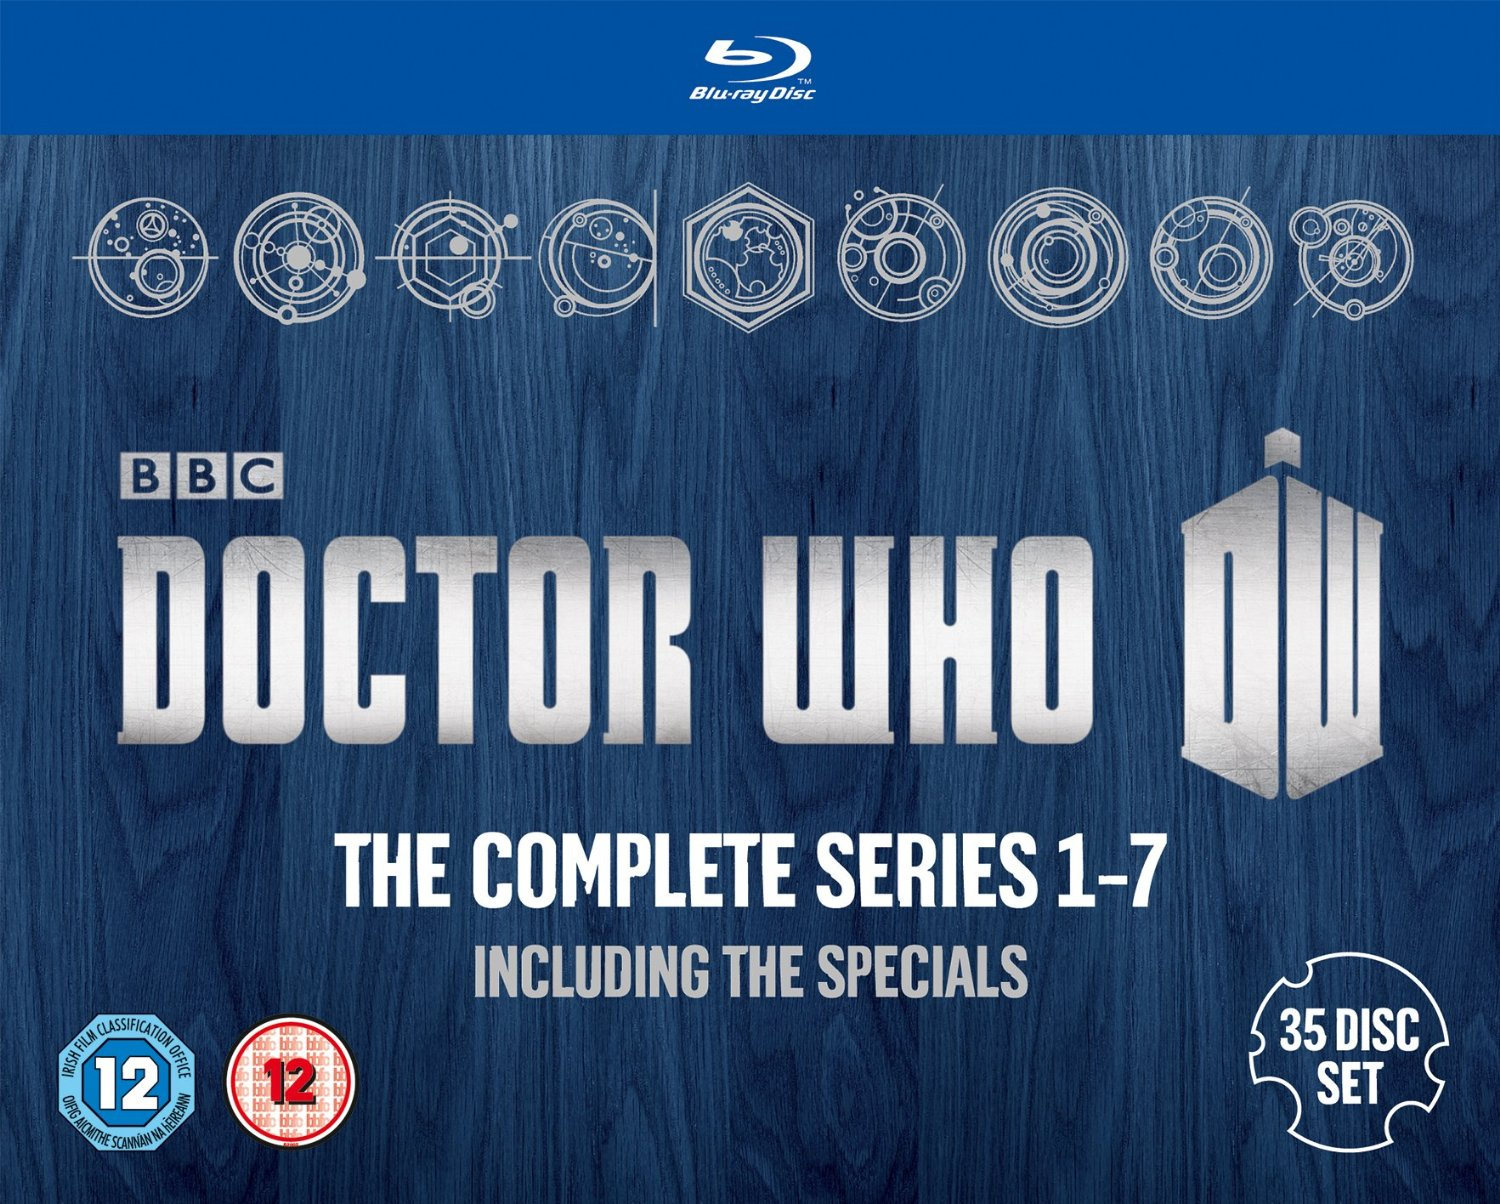 Complete series 1-7 uk bd